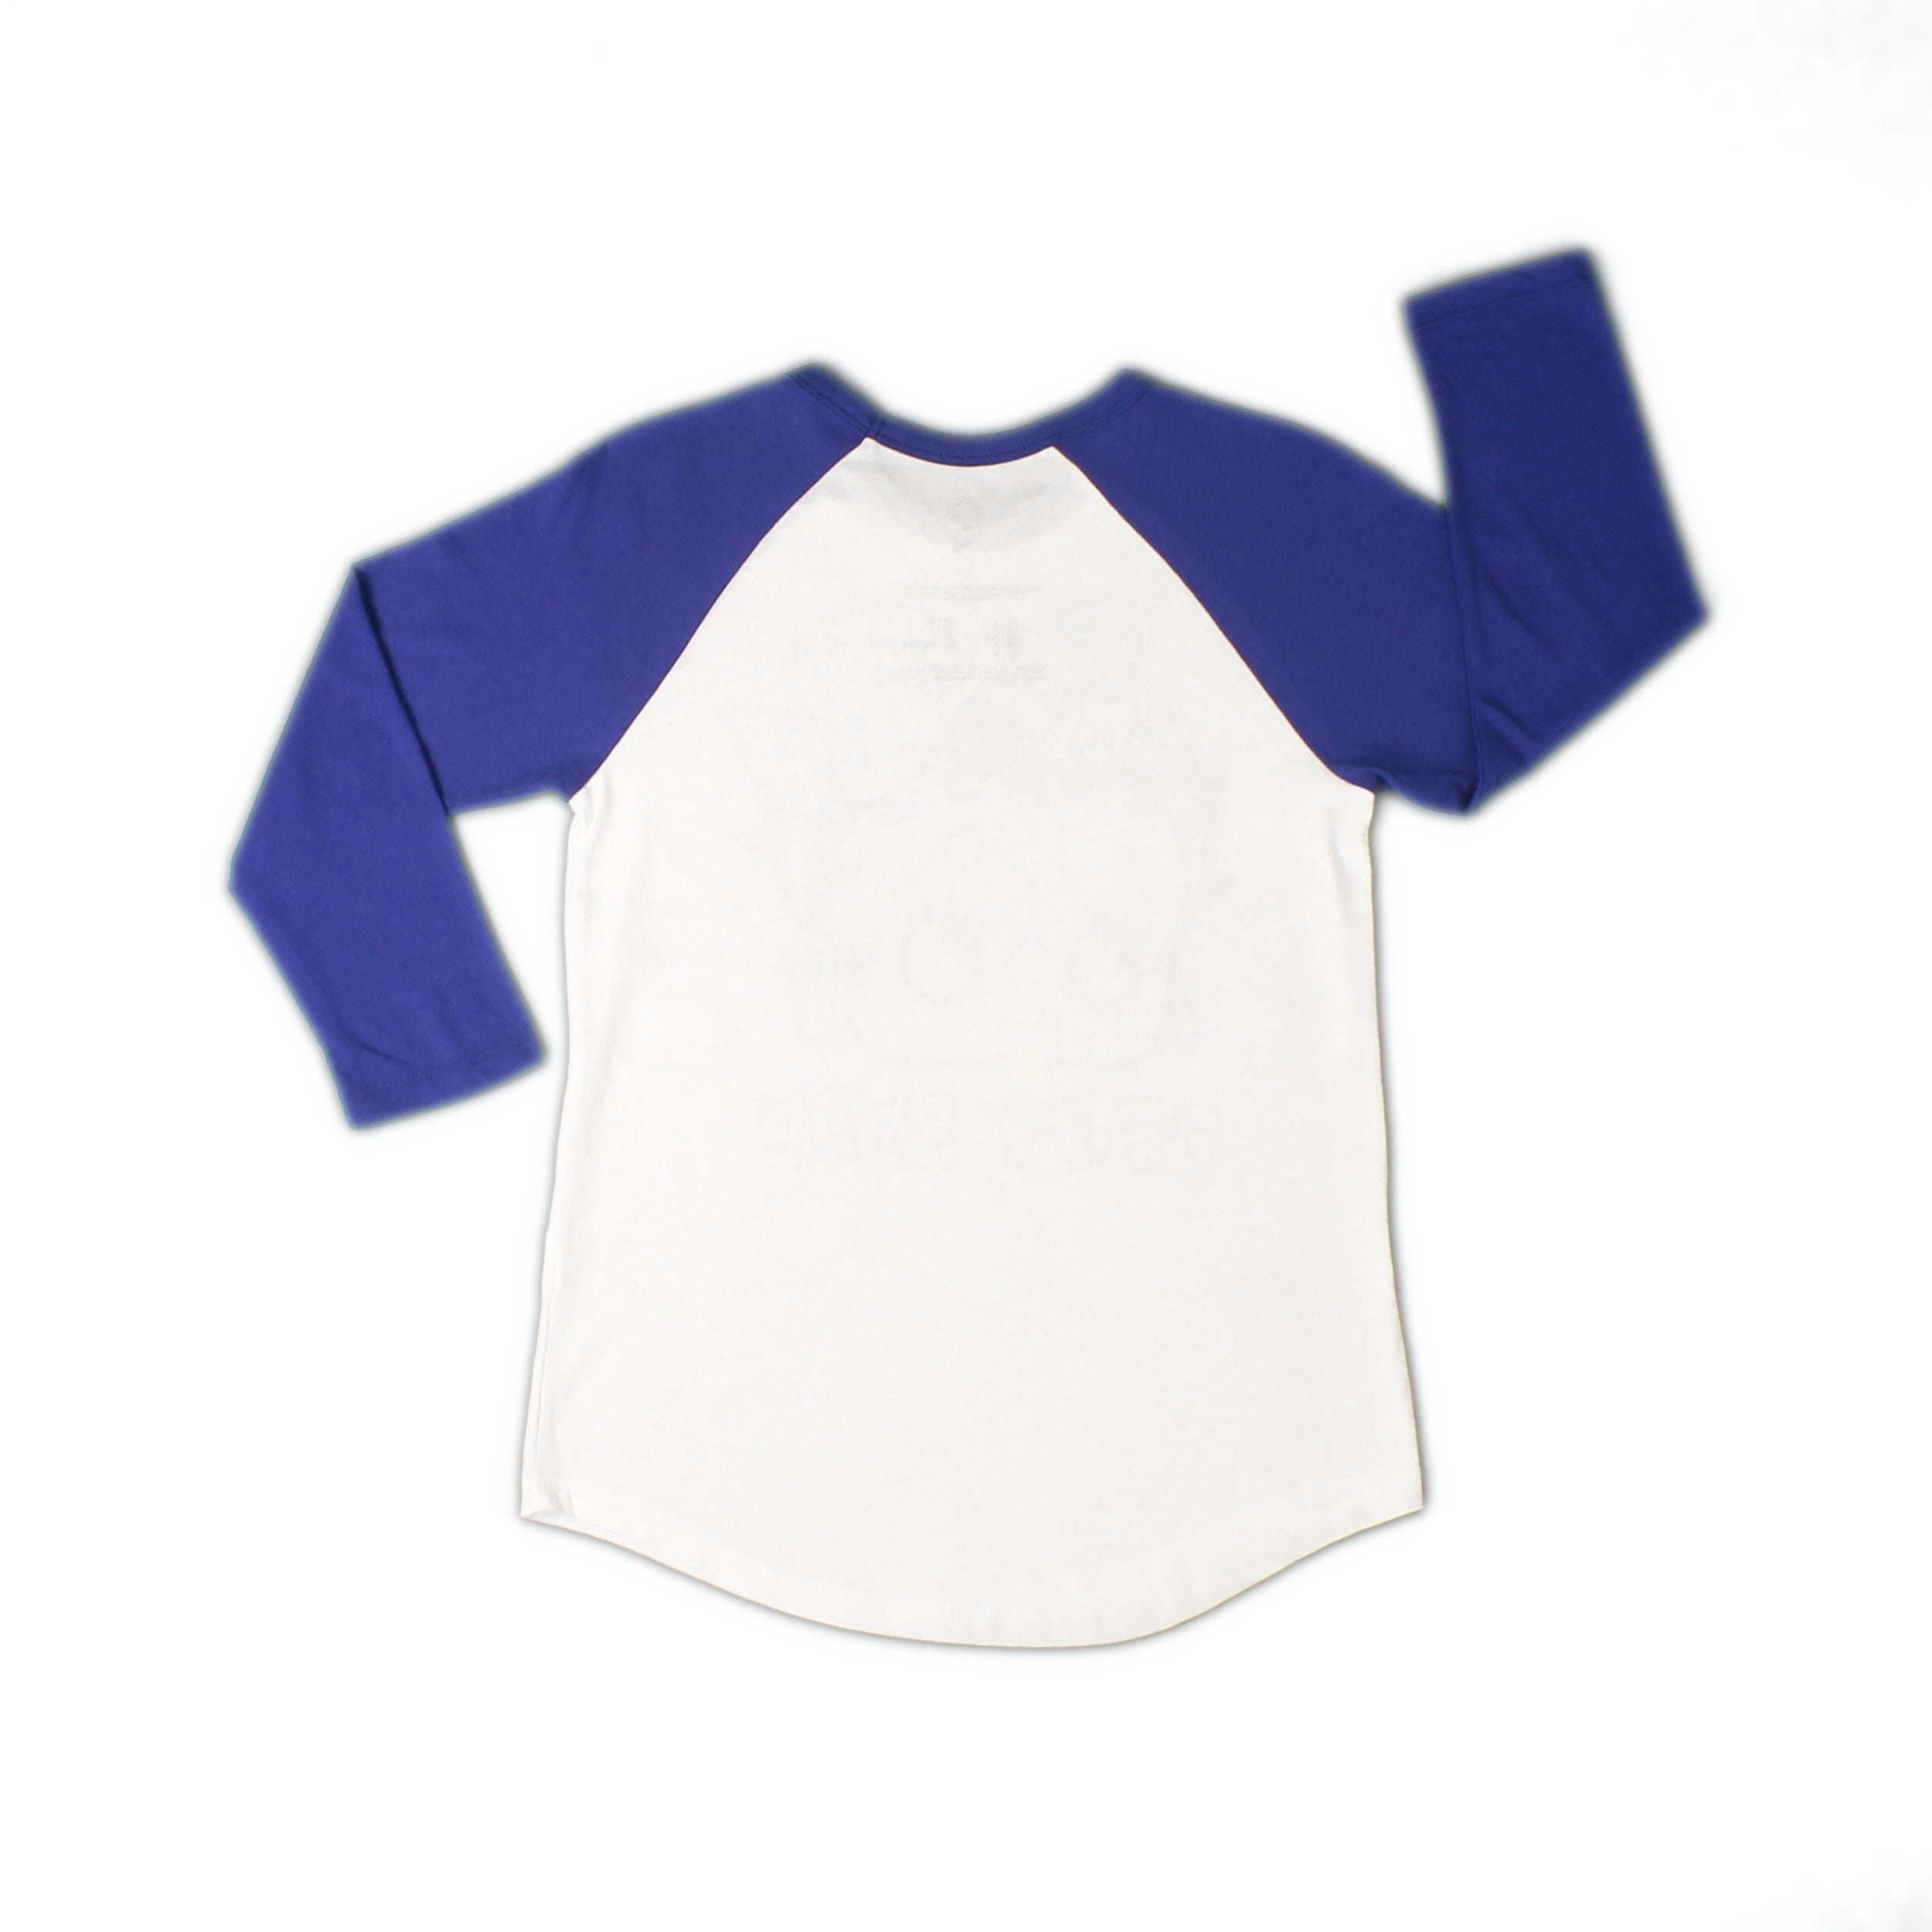 061c4cda Shop Betty Boop With Velvet Anchors Bow White Baseball Tee - Free Shipping  On Orders Over $45 - Overstock - 19759859